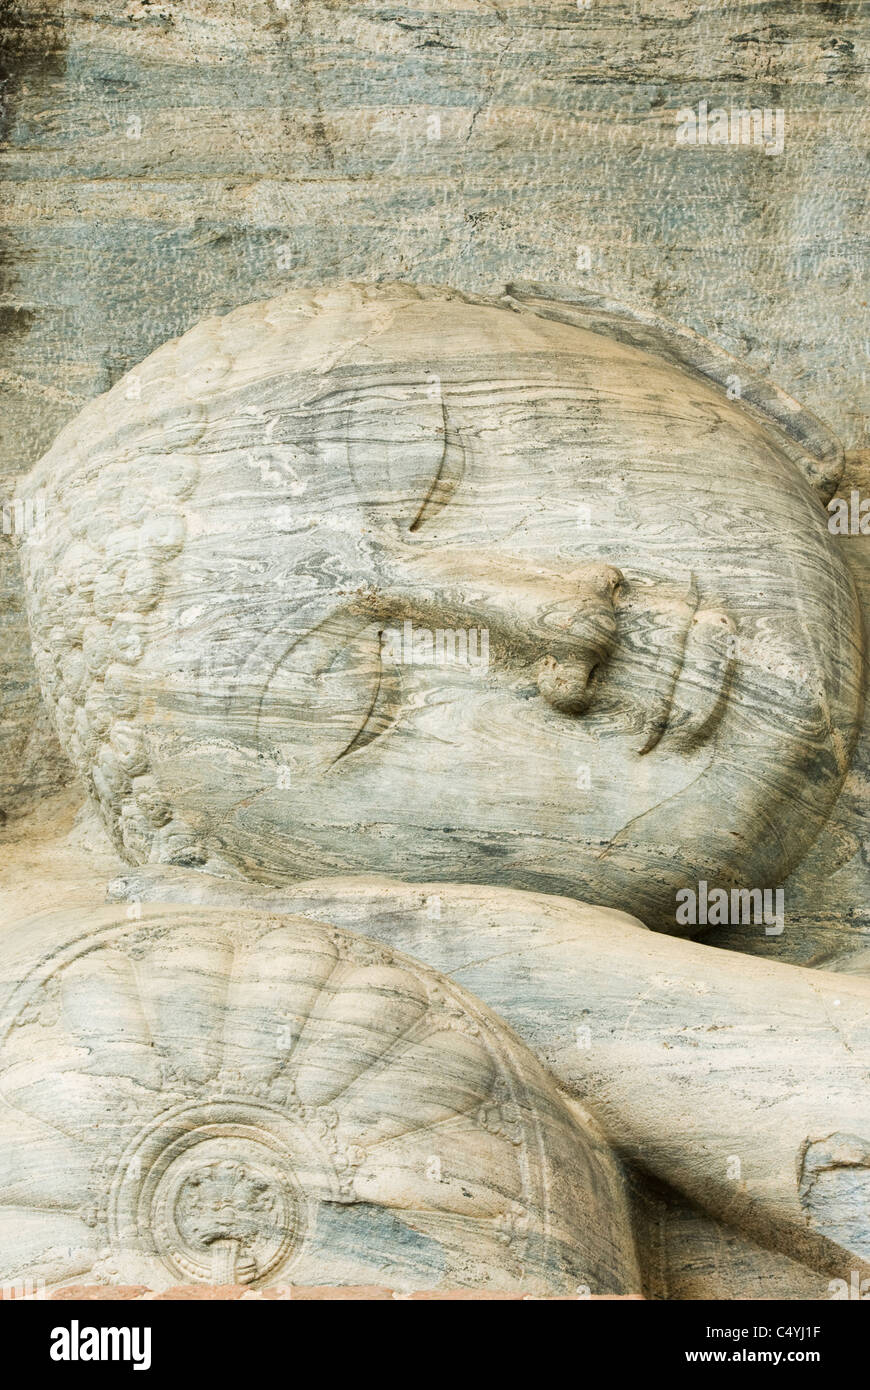 Face of Reclining Buddha, Gal Vihara, Polonnaruwa, Sri Lanka WORLD HERITAGE SITE. Stock Photo